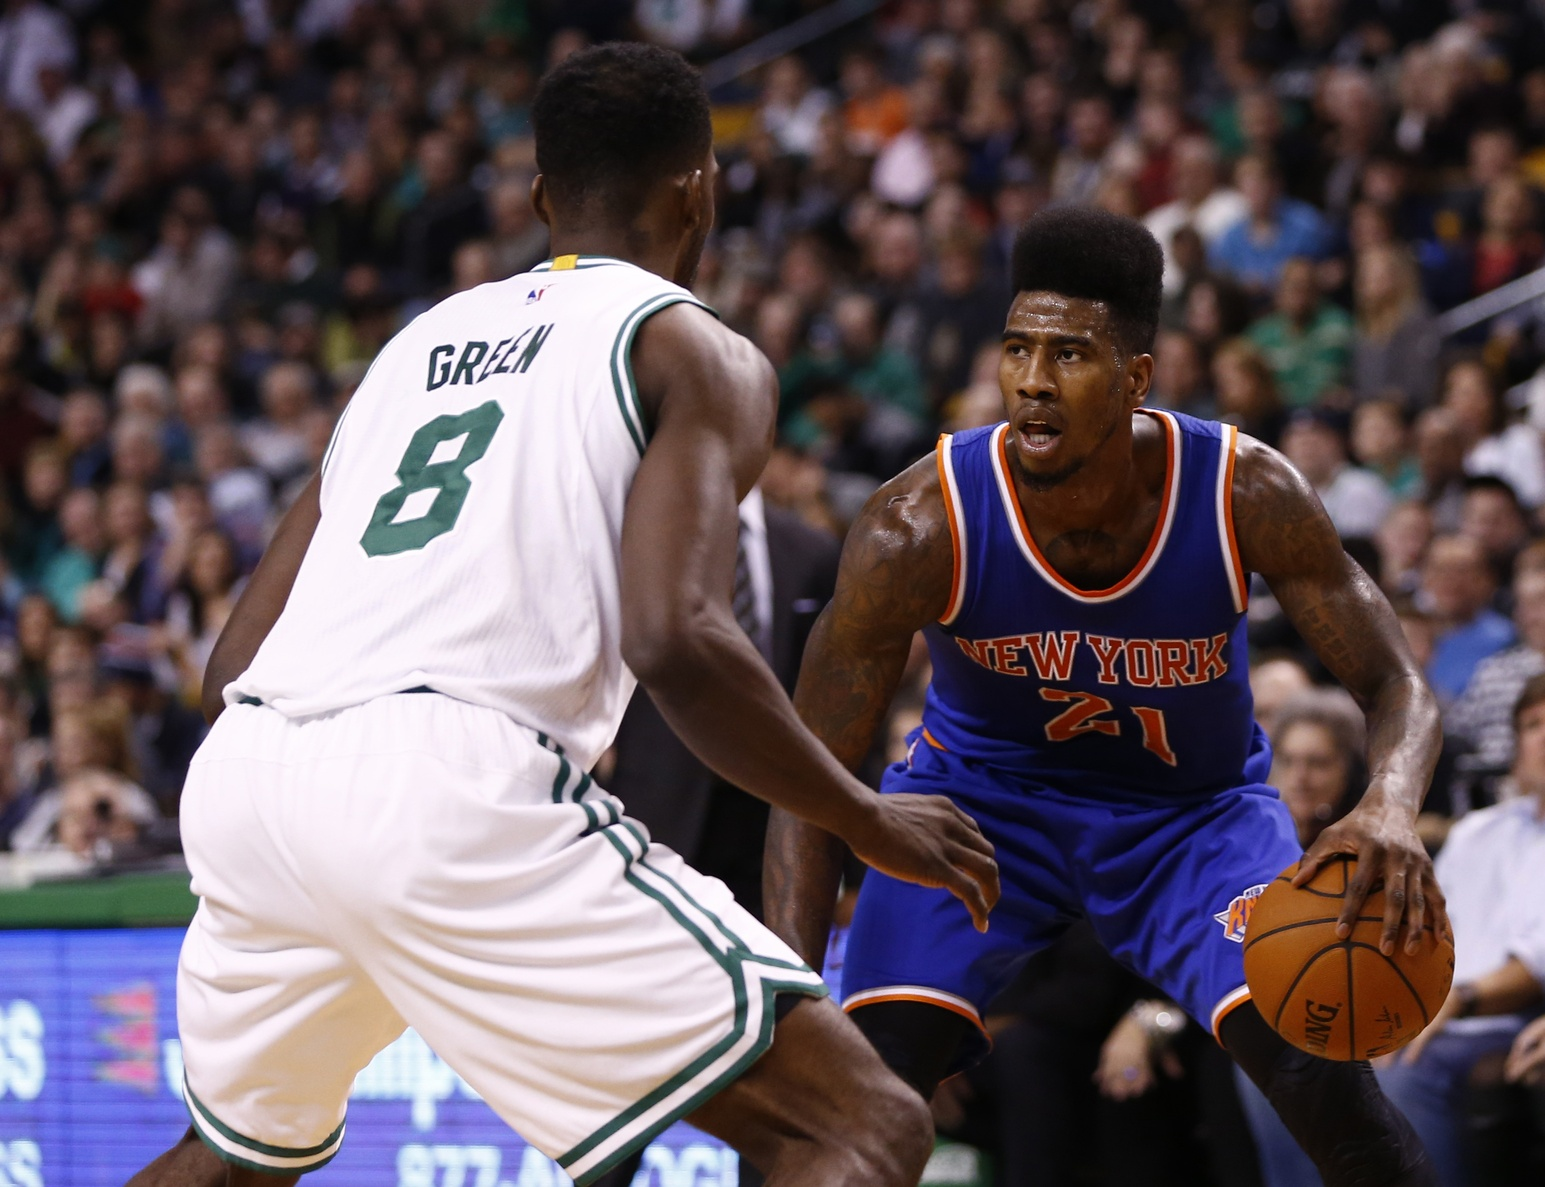 Iman Shumpert: Cavs 'Grabbed Me Out of Hell' With New York Knicks